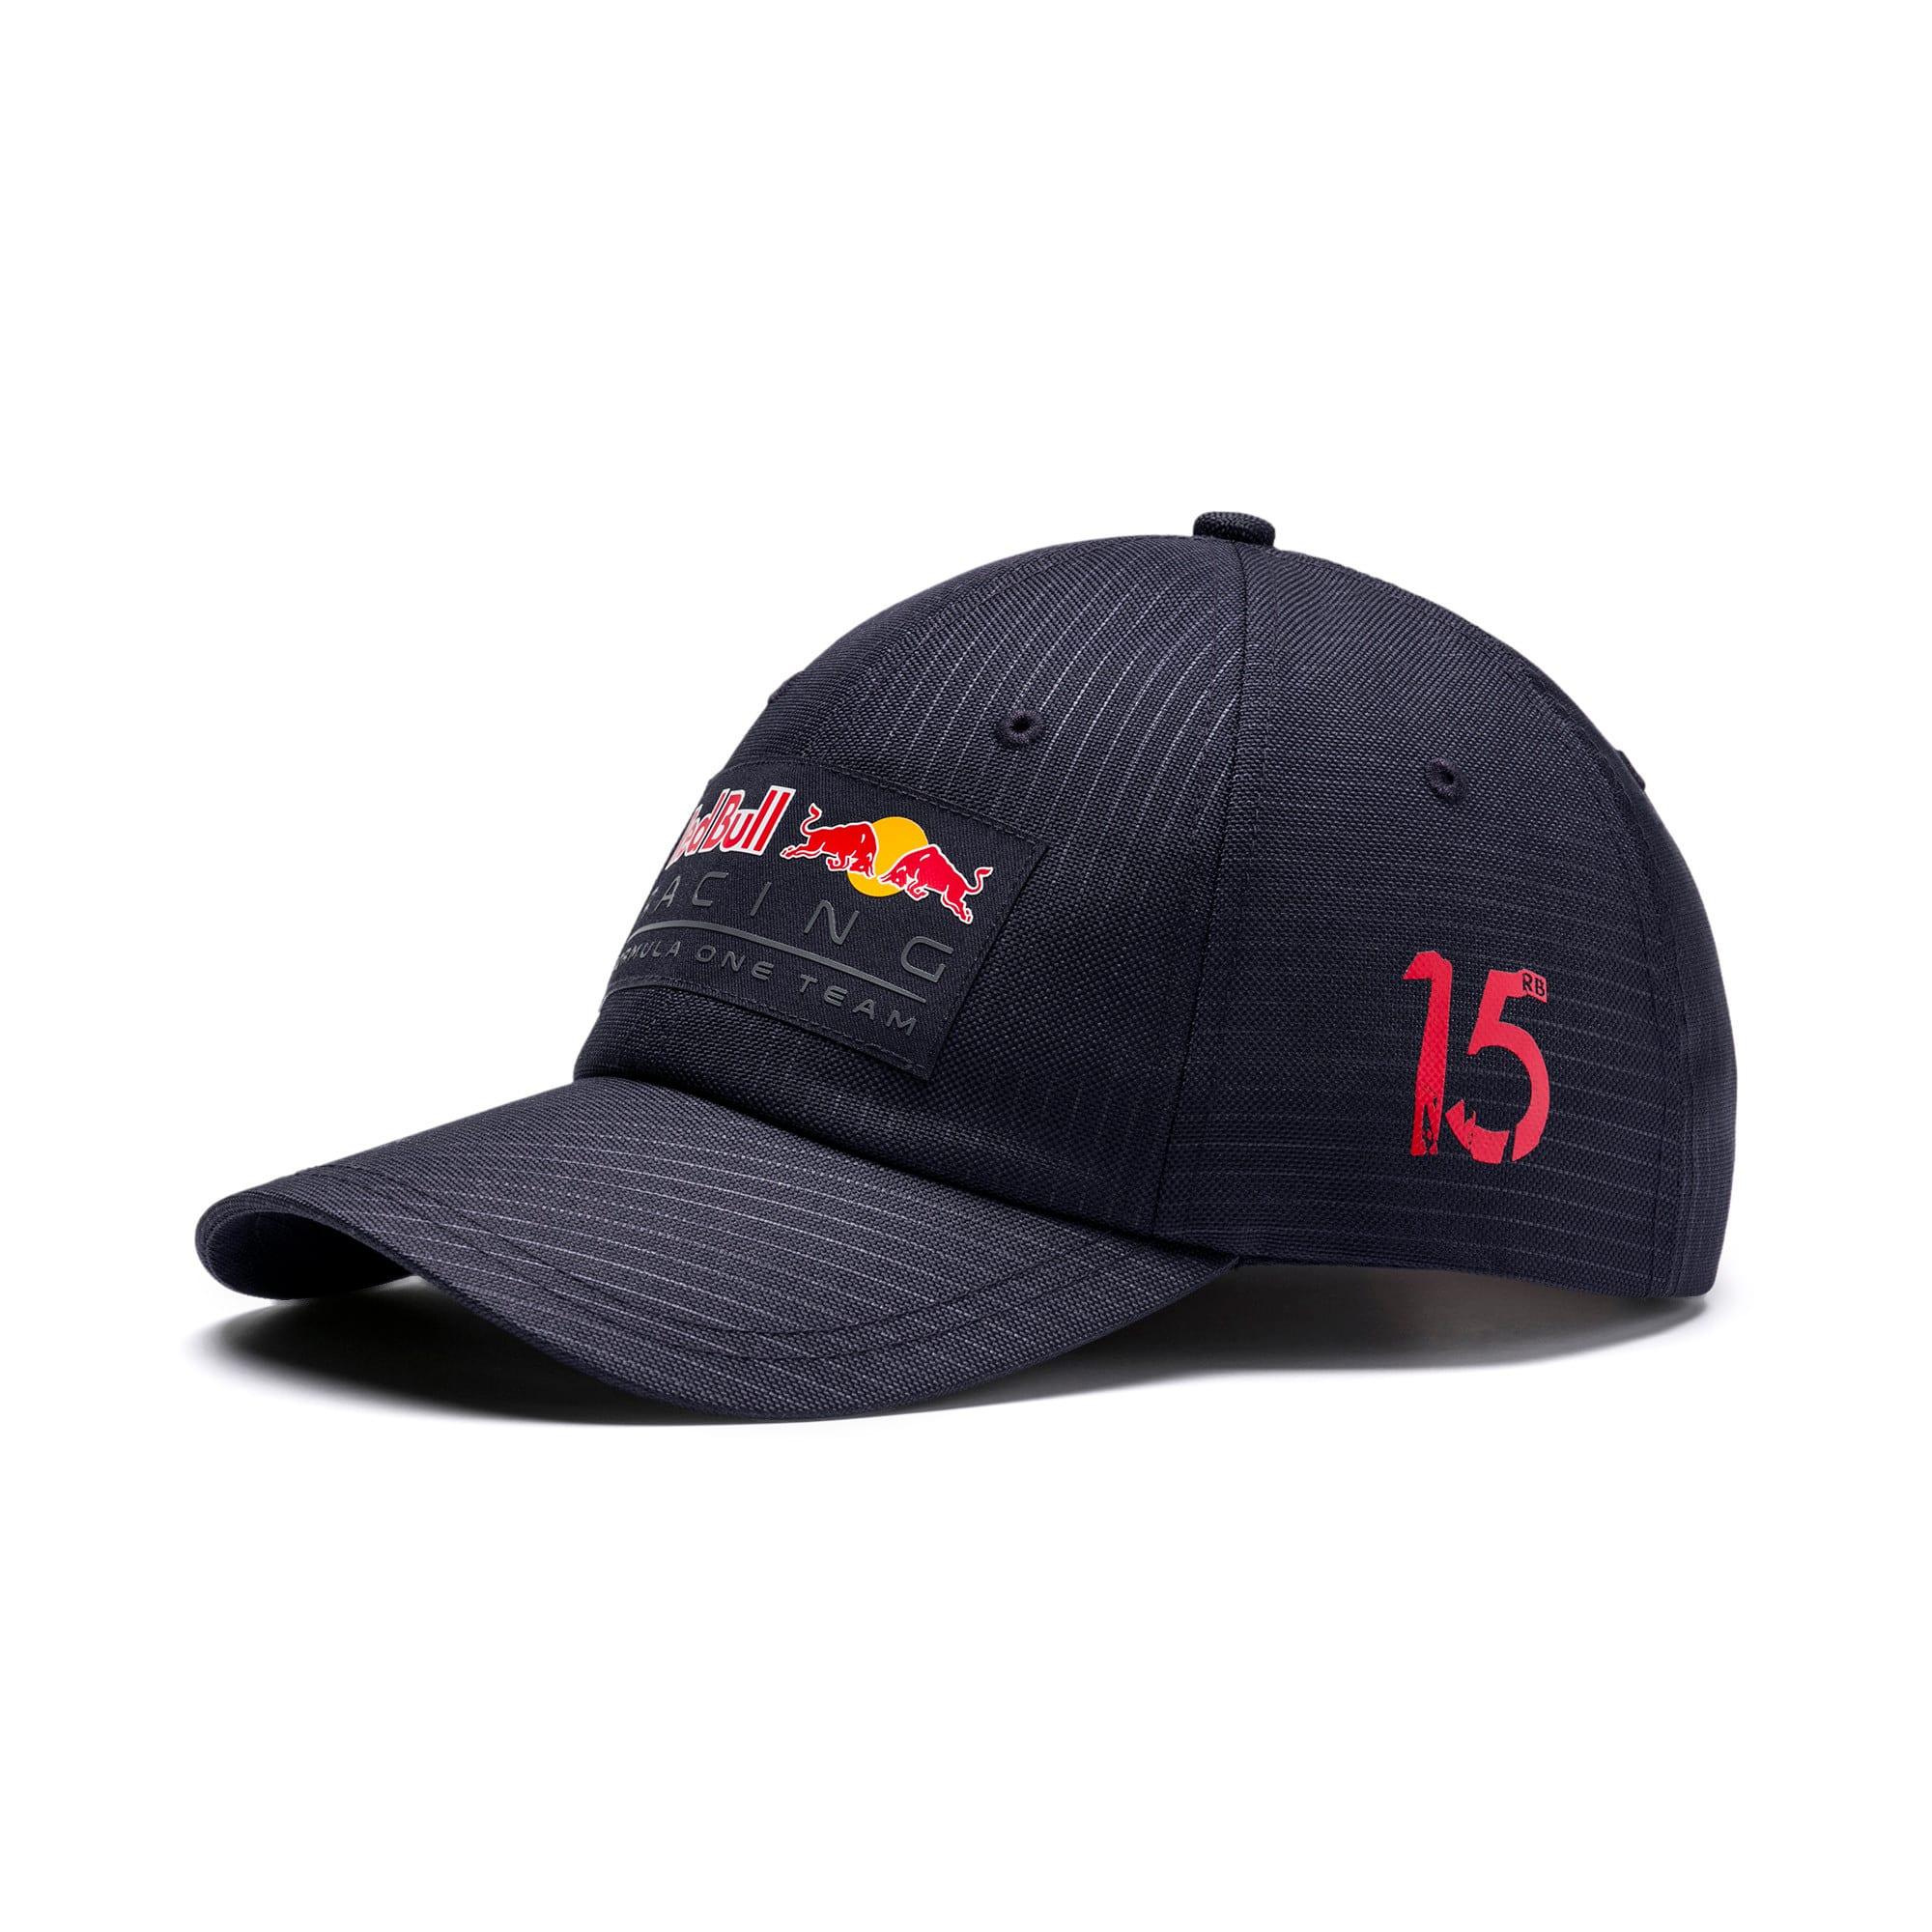 Thumbnail 1 of RED BULL RACING ライフスタイル BB キャップ, NIGHT SKY, medium-JPN